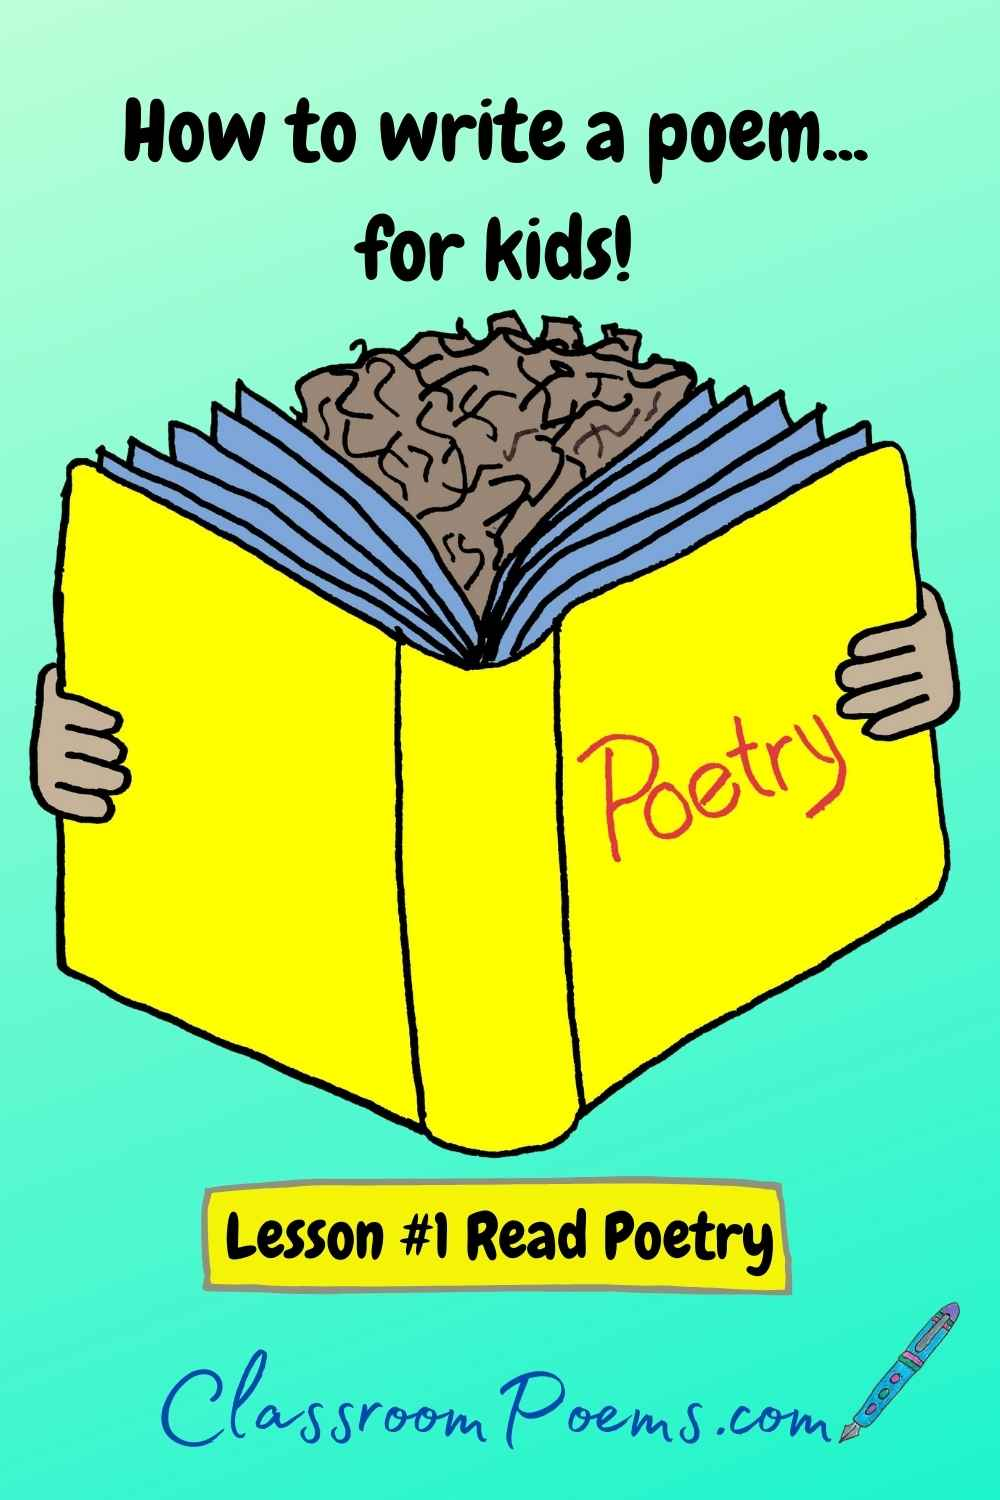 How to write poems: Lessons for Kids by Denise Rodgers on ClassroomPoems.com.